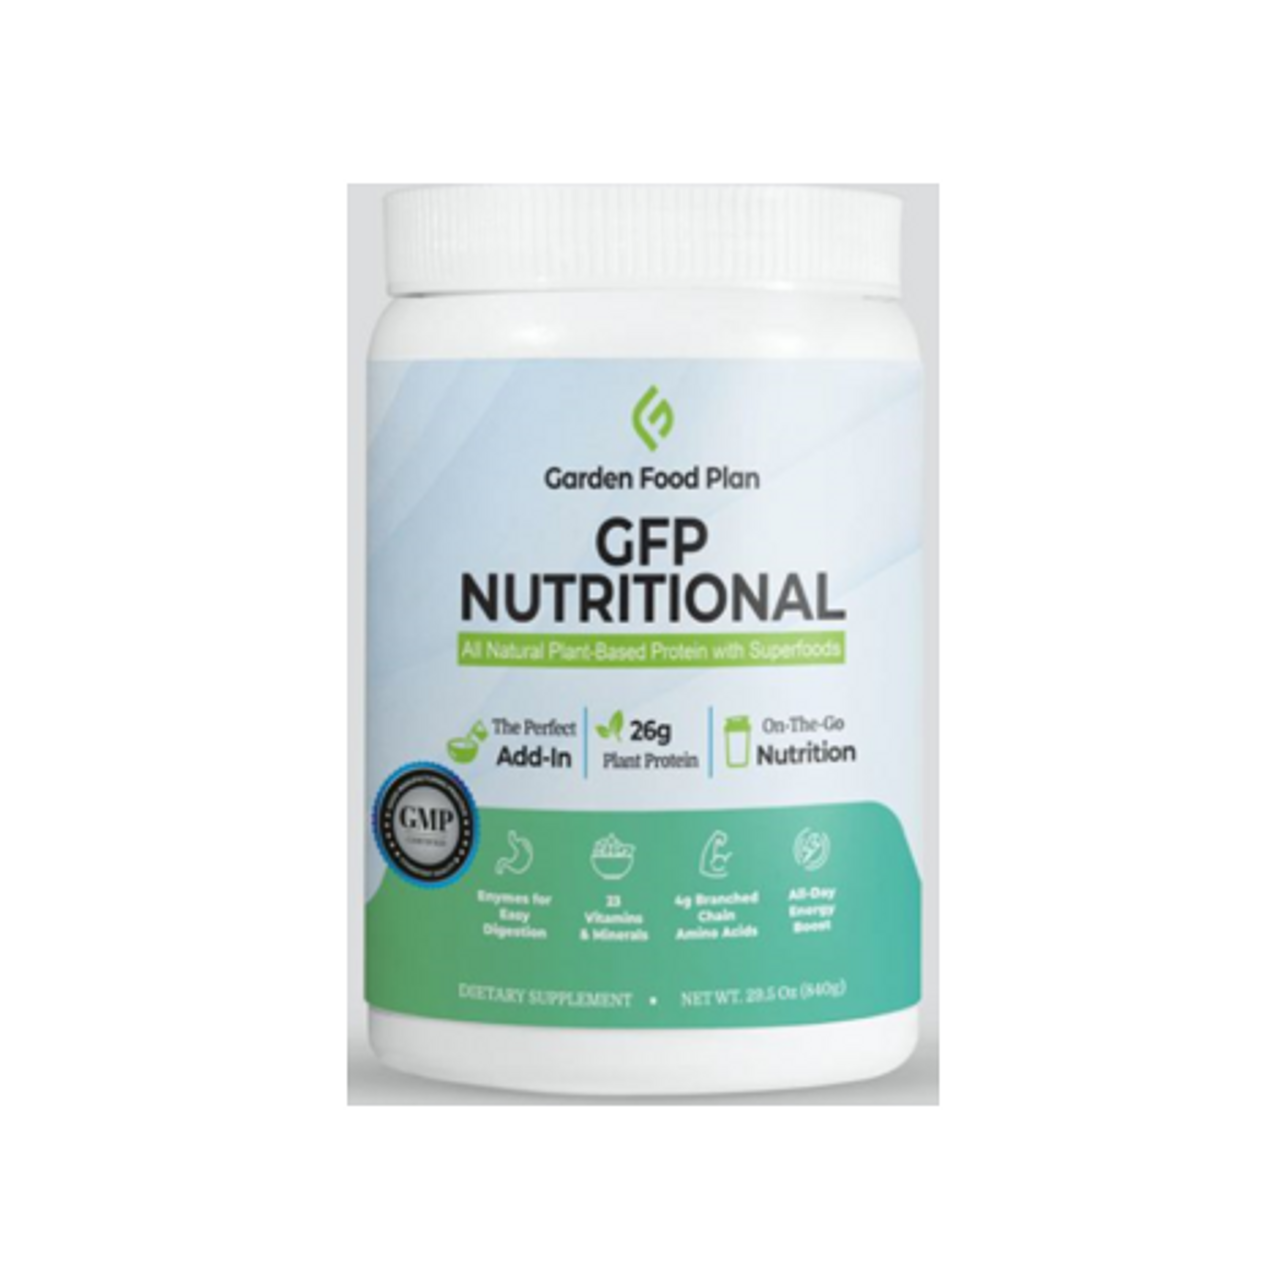 GFP Nutritional